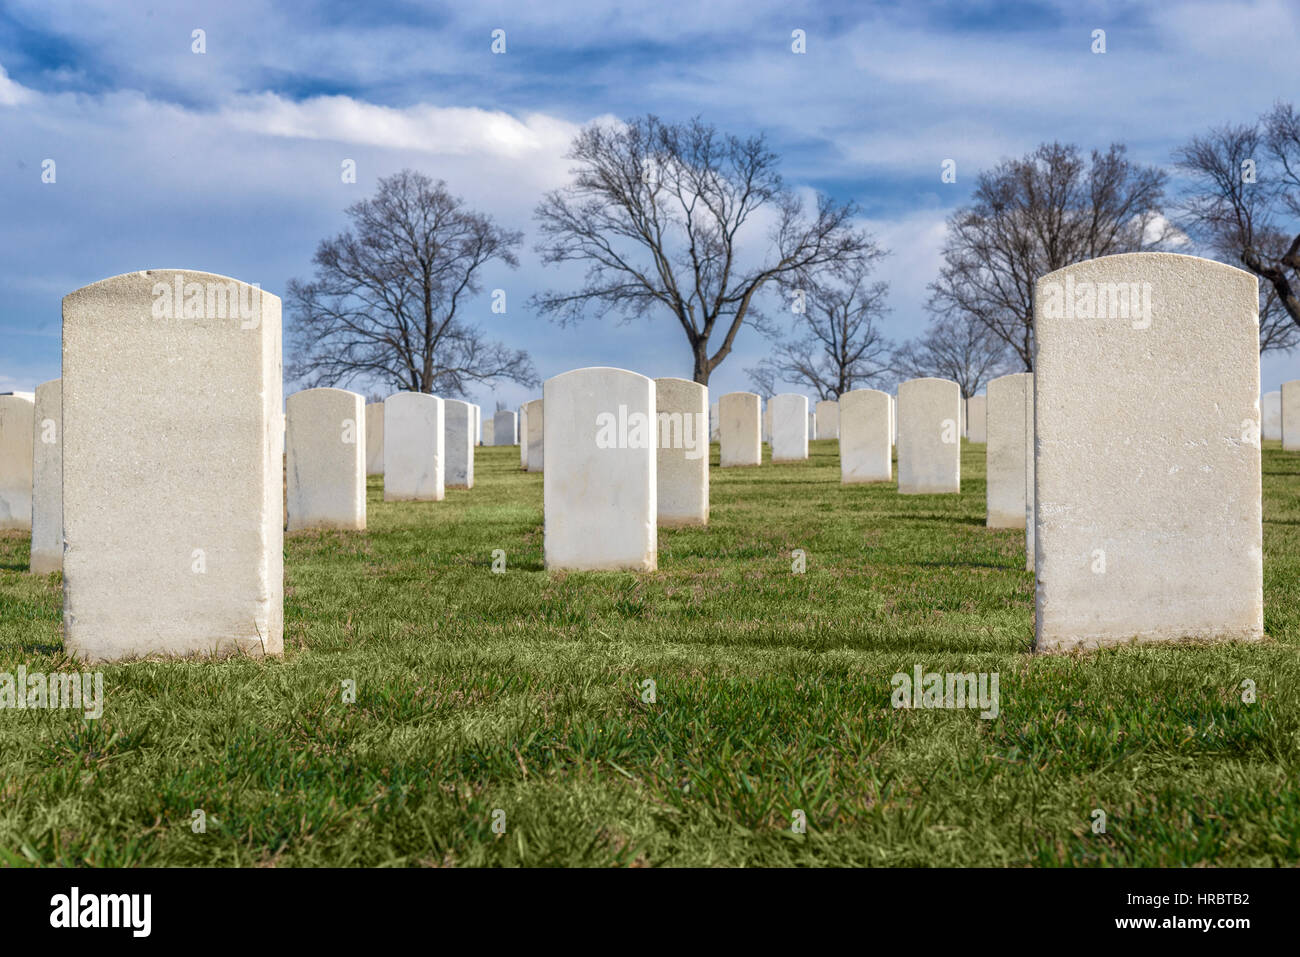 Rows of stately white tombstones in a United States Veterans Cemetery. Names and information has been removed to - Stock Image